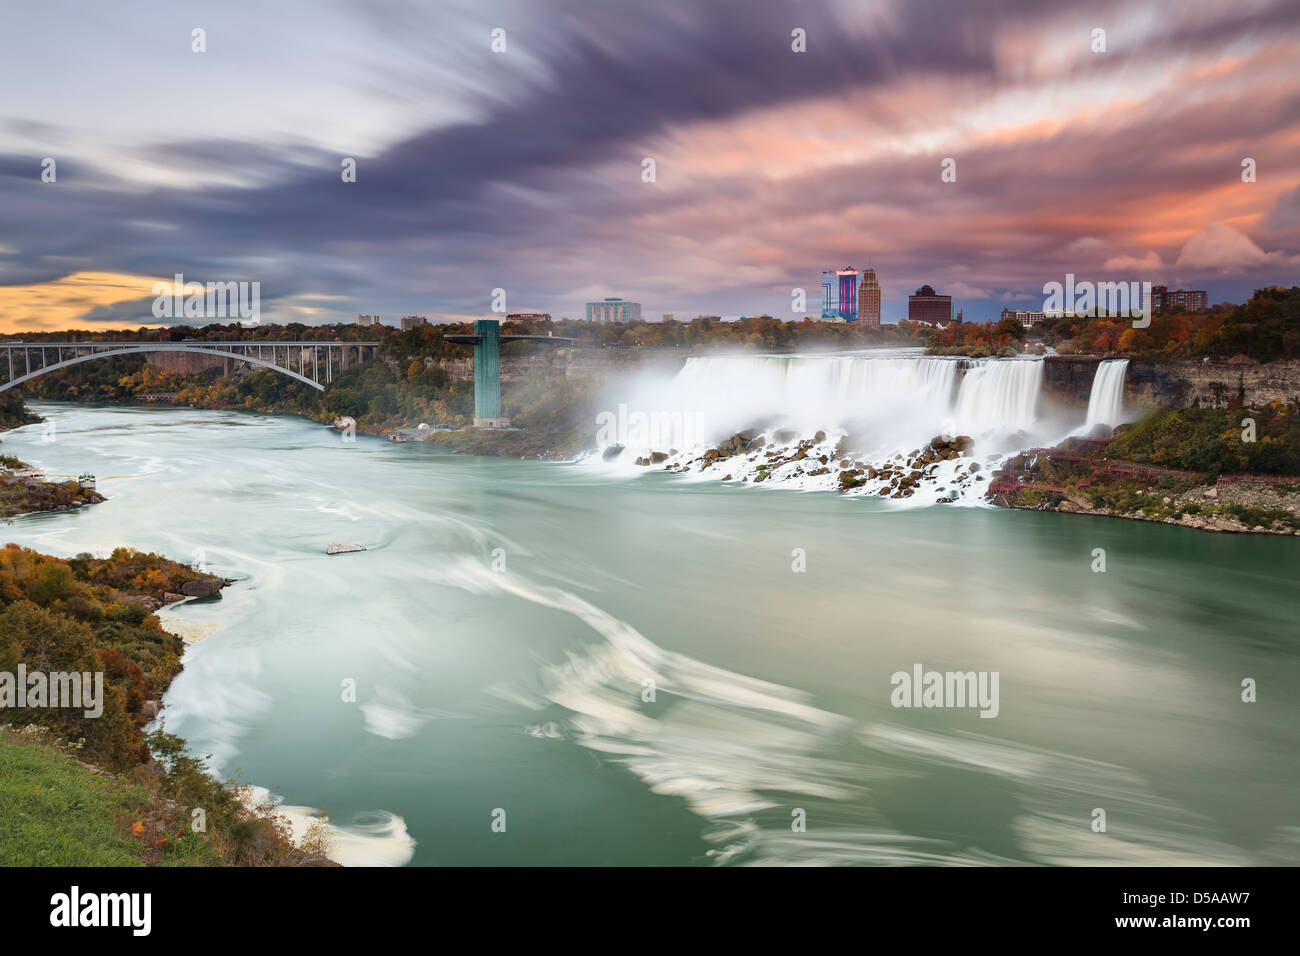 Niagara River with American Falls and Rainbow Bridge, Niagara Falls, New York, USA - Stock Image